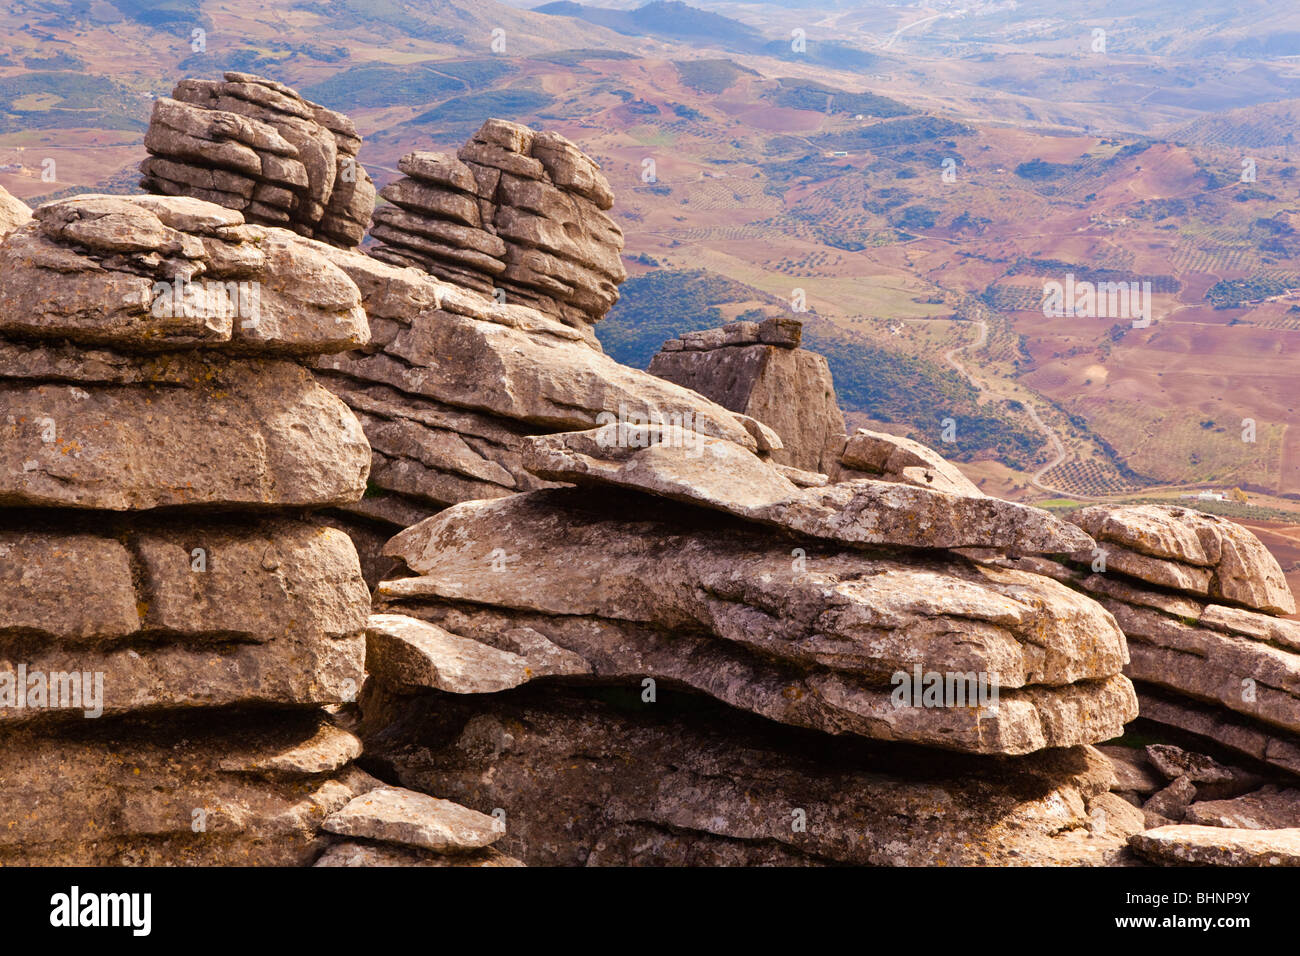 Karstic rock formations in El Torcal Park Nature Reserve near Antequera, Spain. - Stock Image